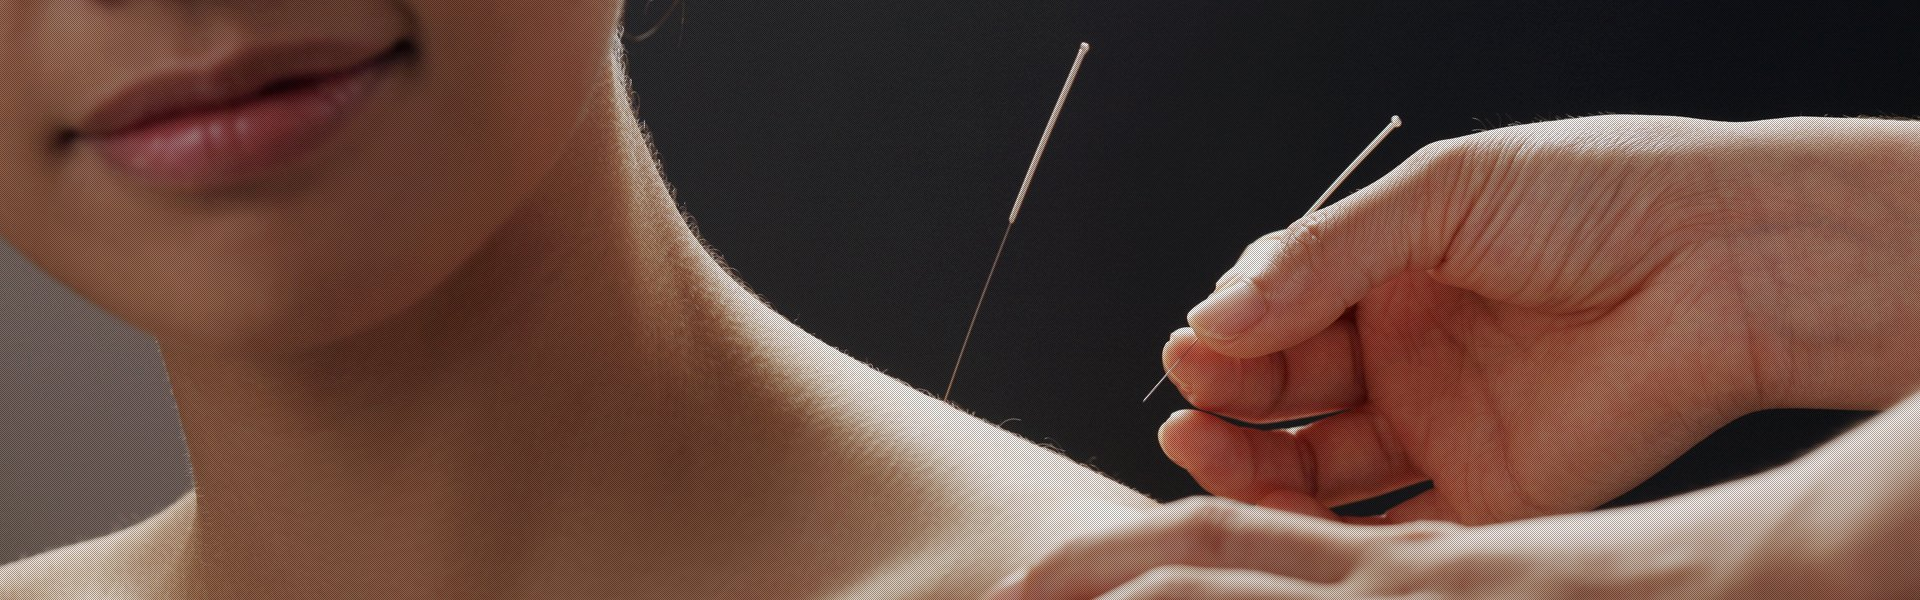 Skilled acupuncturist serving the local community